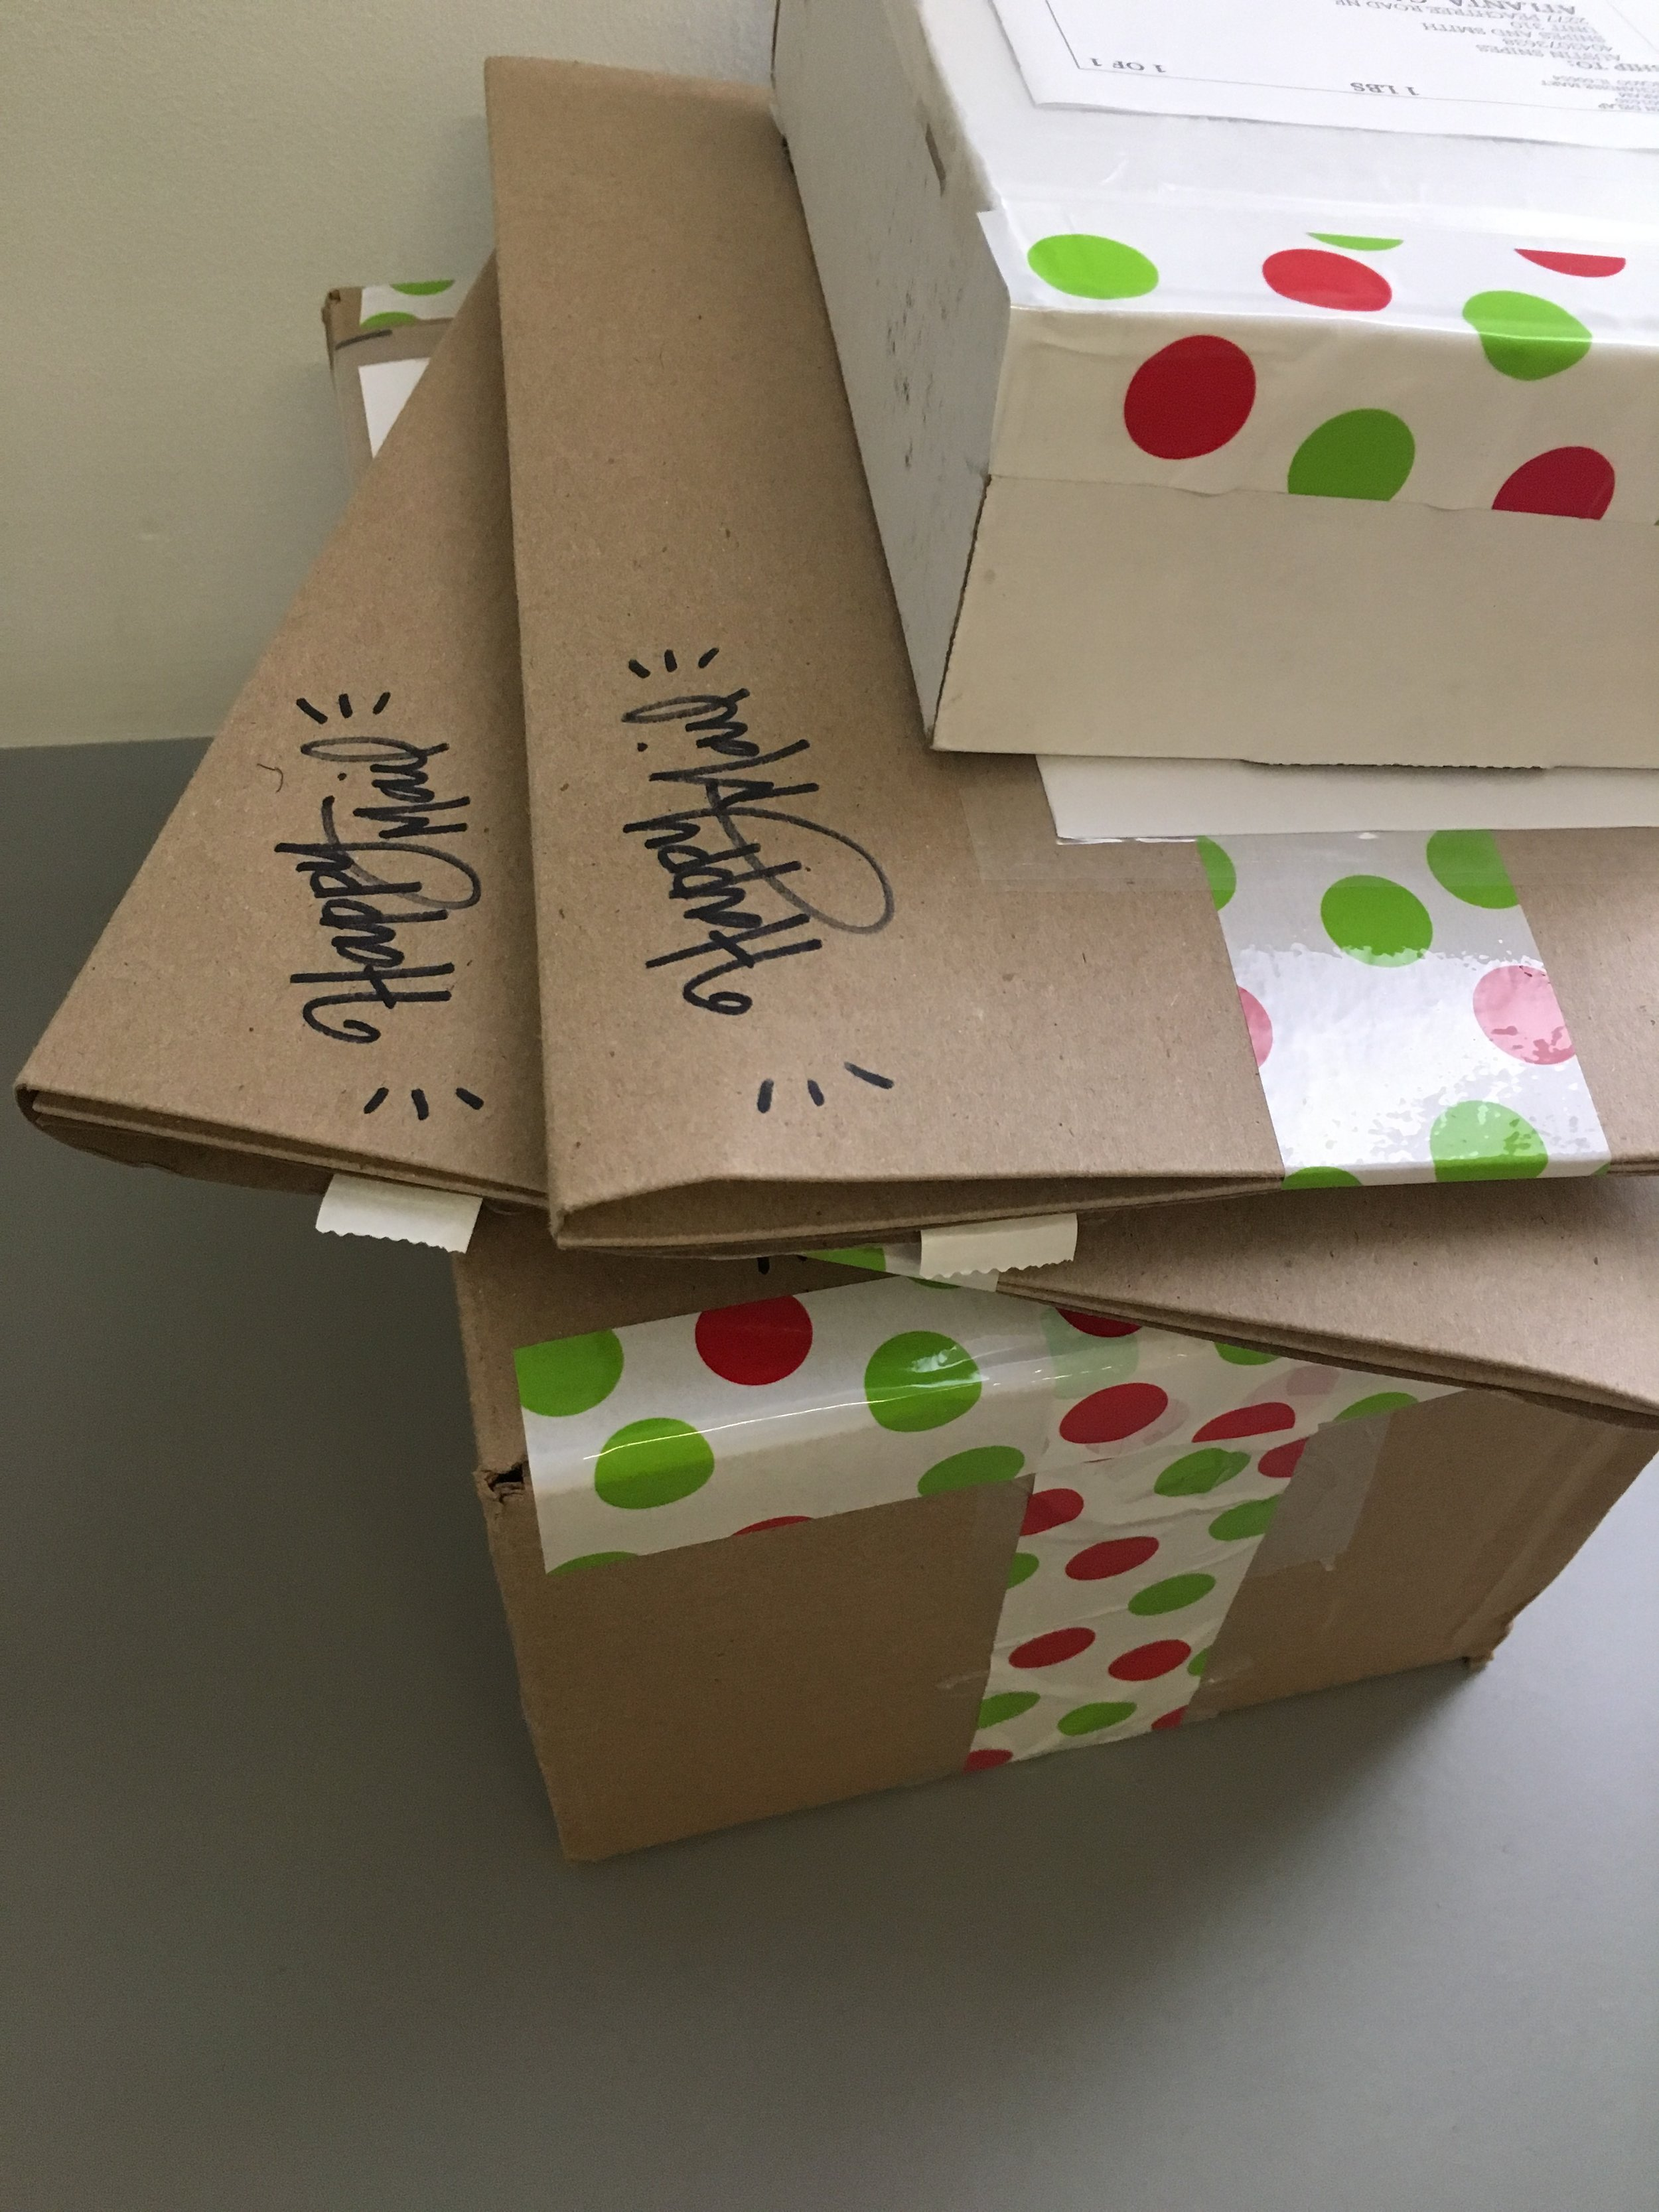 Packages all ready to go. Hope the recipients enjoy opening as much as I enjoy sending!